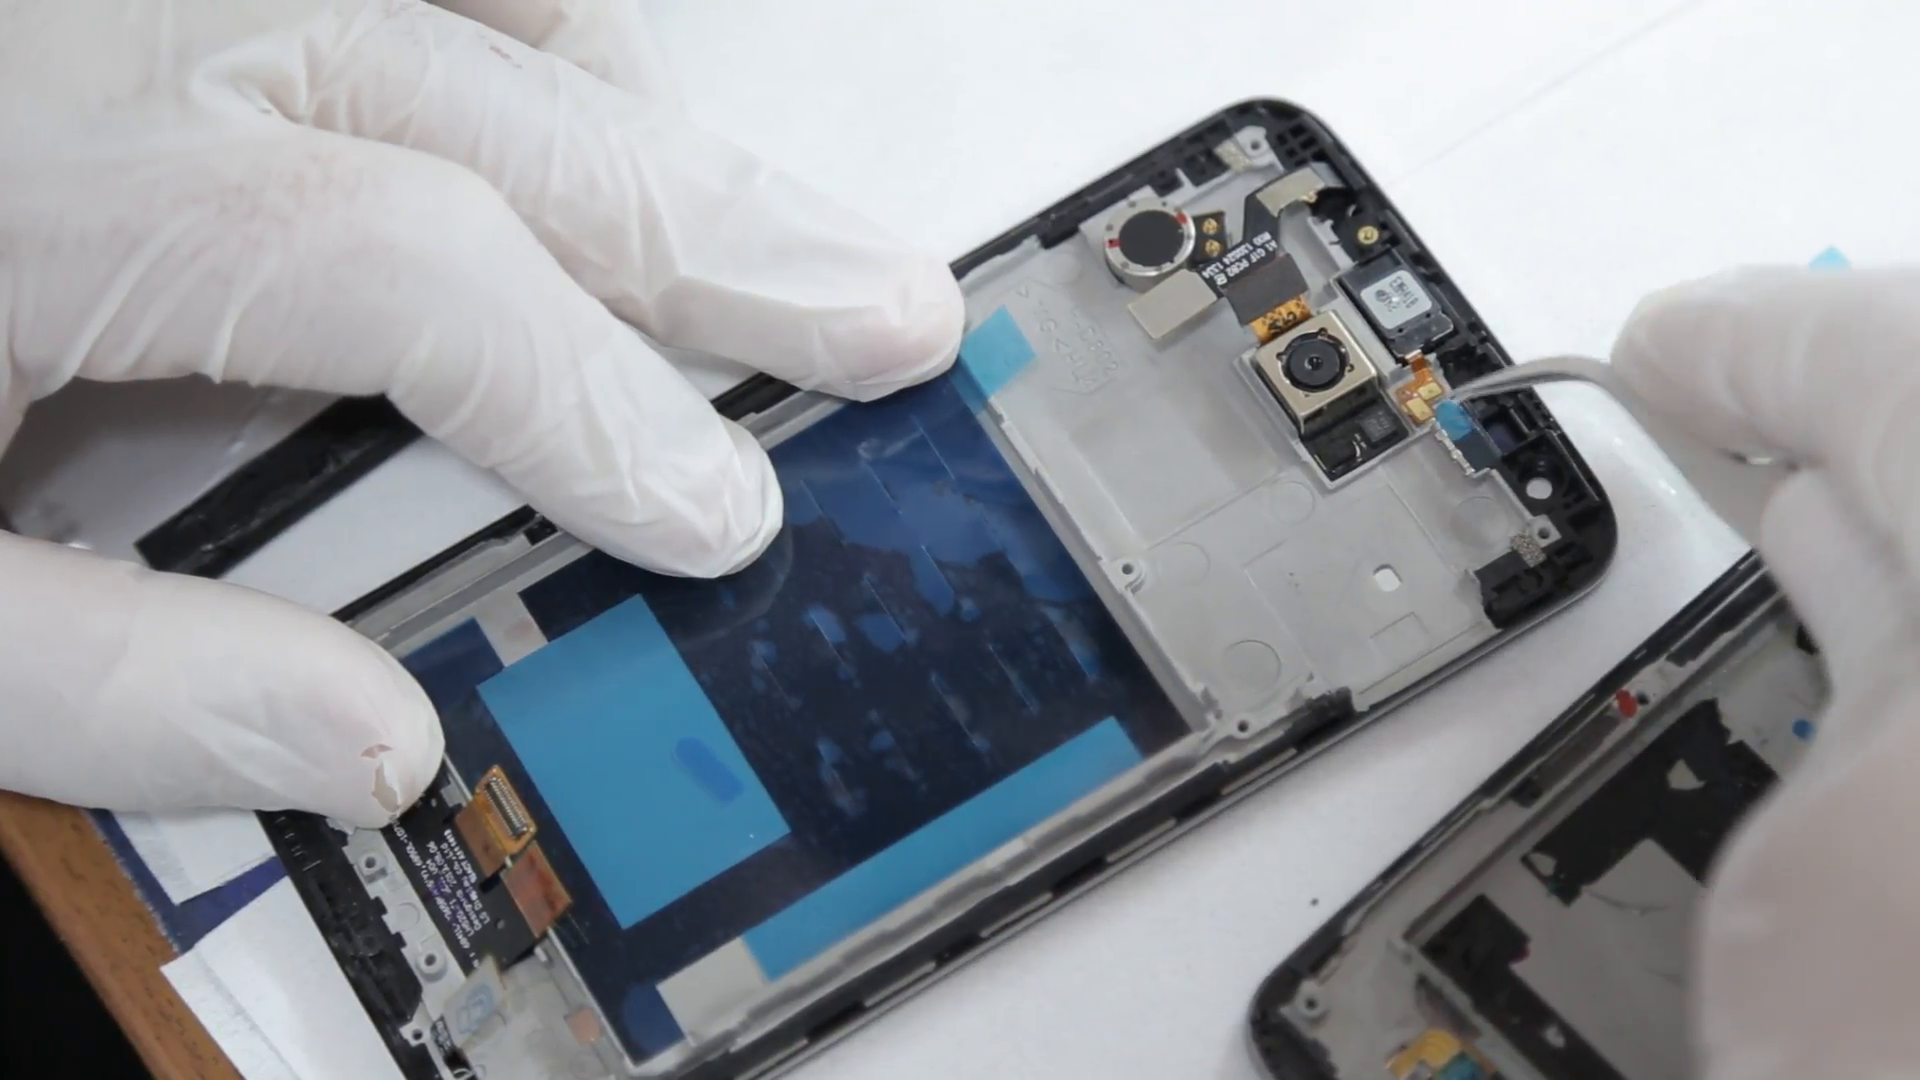 mobile-phone-repair-lab-technician-at-work_4swow-qhg__F0000